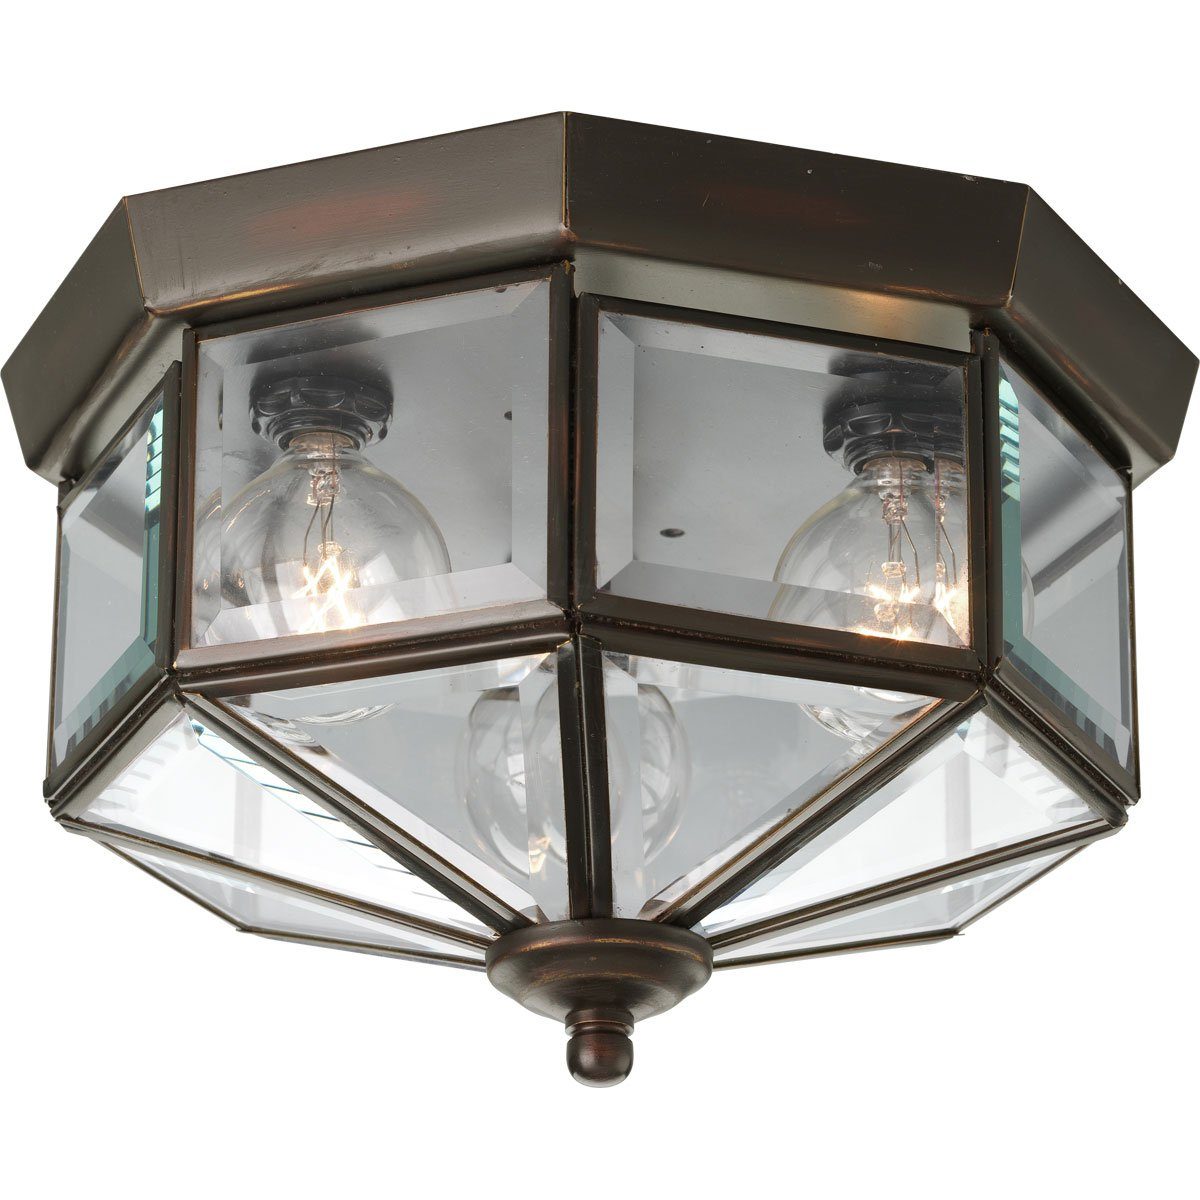 Progress Outdoor Lighting Fixtures Progress lighting p5788 20 octagonal close to ceiling fixture with progress lighting p5788 20 octagonal close to ceiling fixture with clear bound beveled glass antique bronze hall light ceiling fixture amazon workwithnaturefo